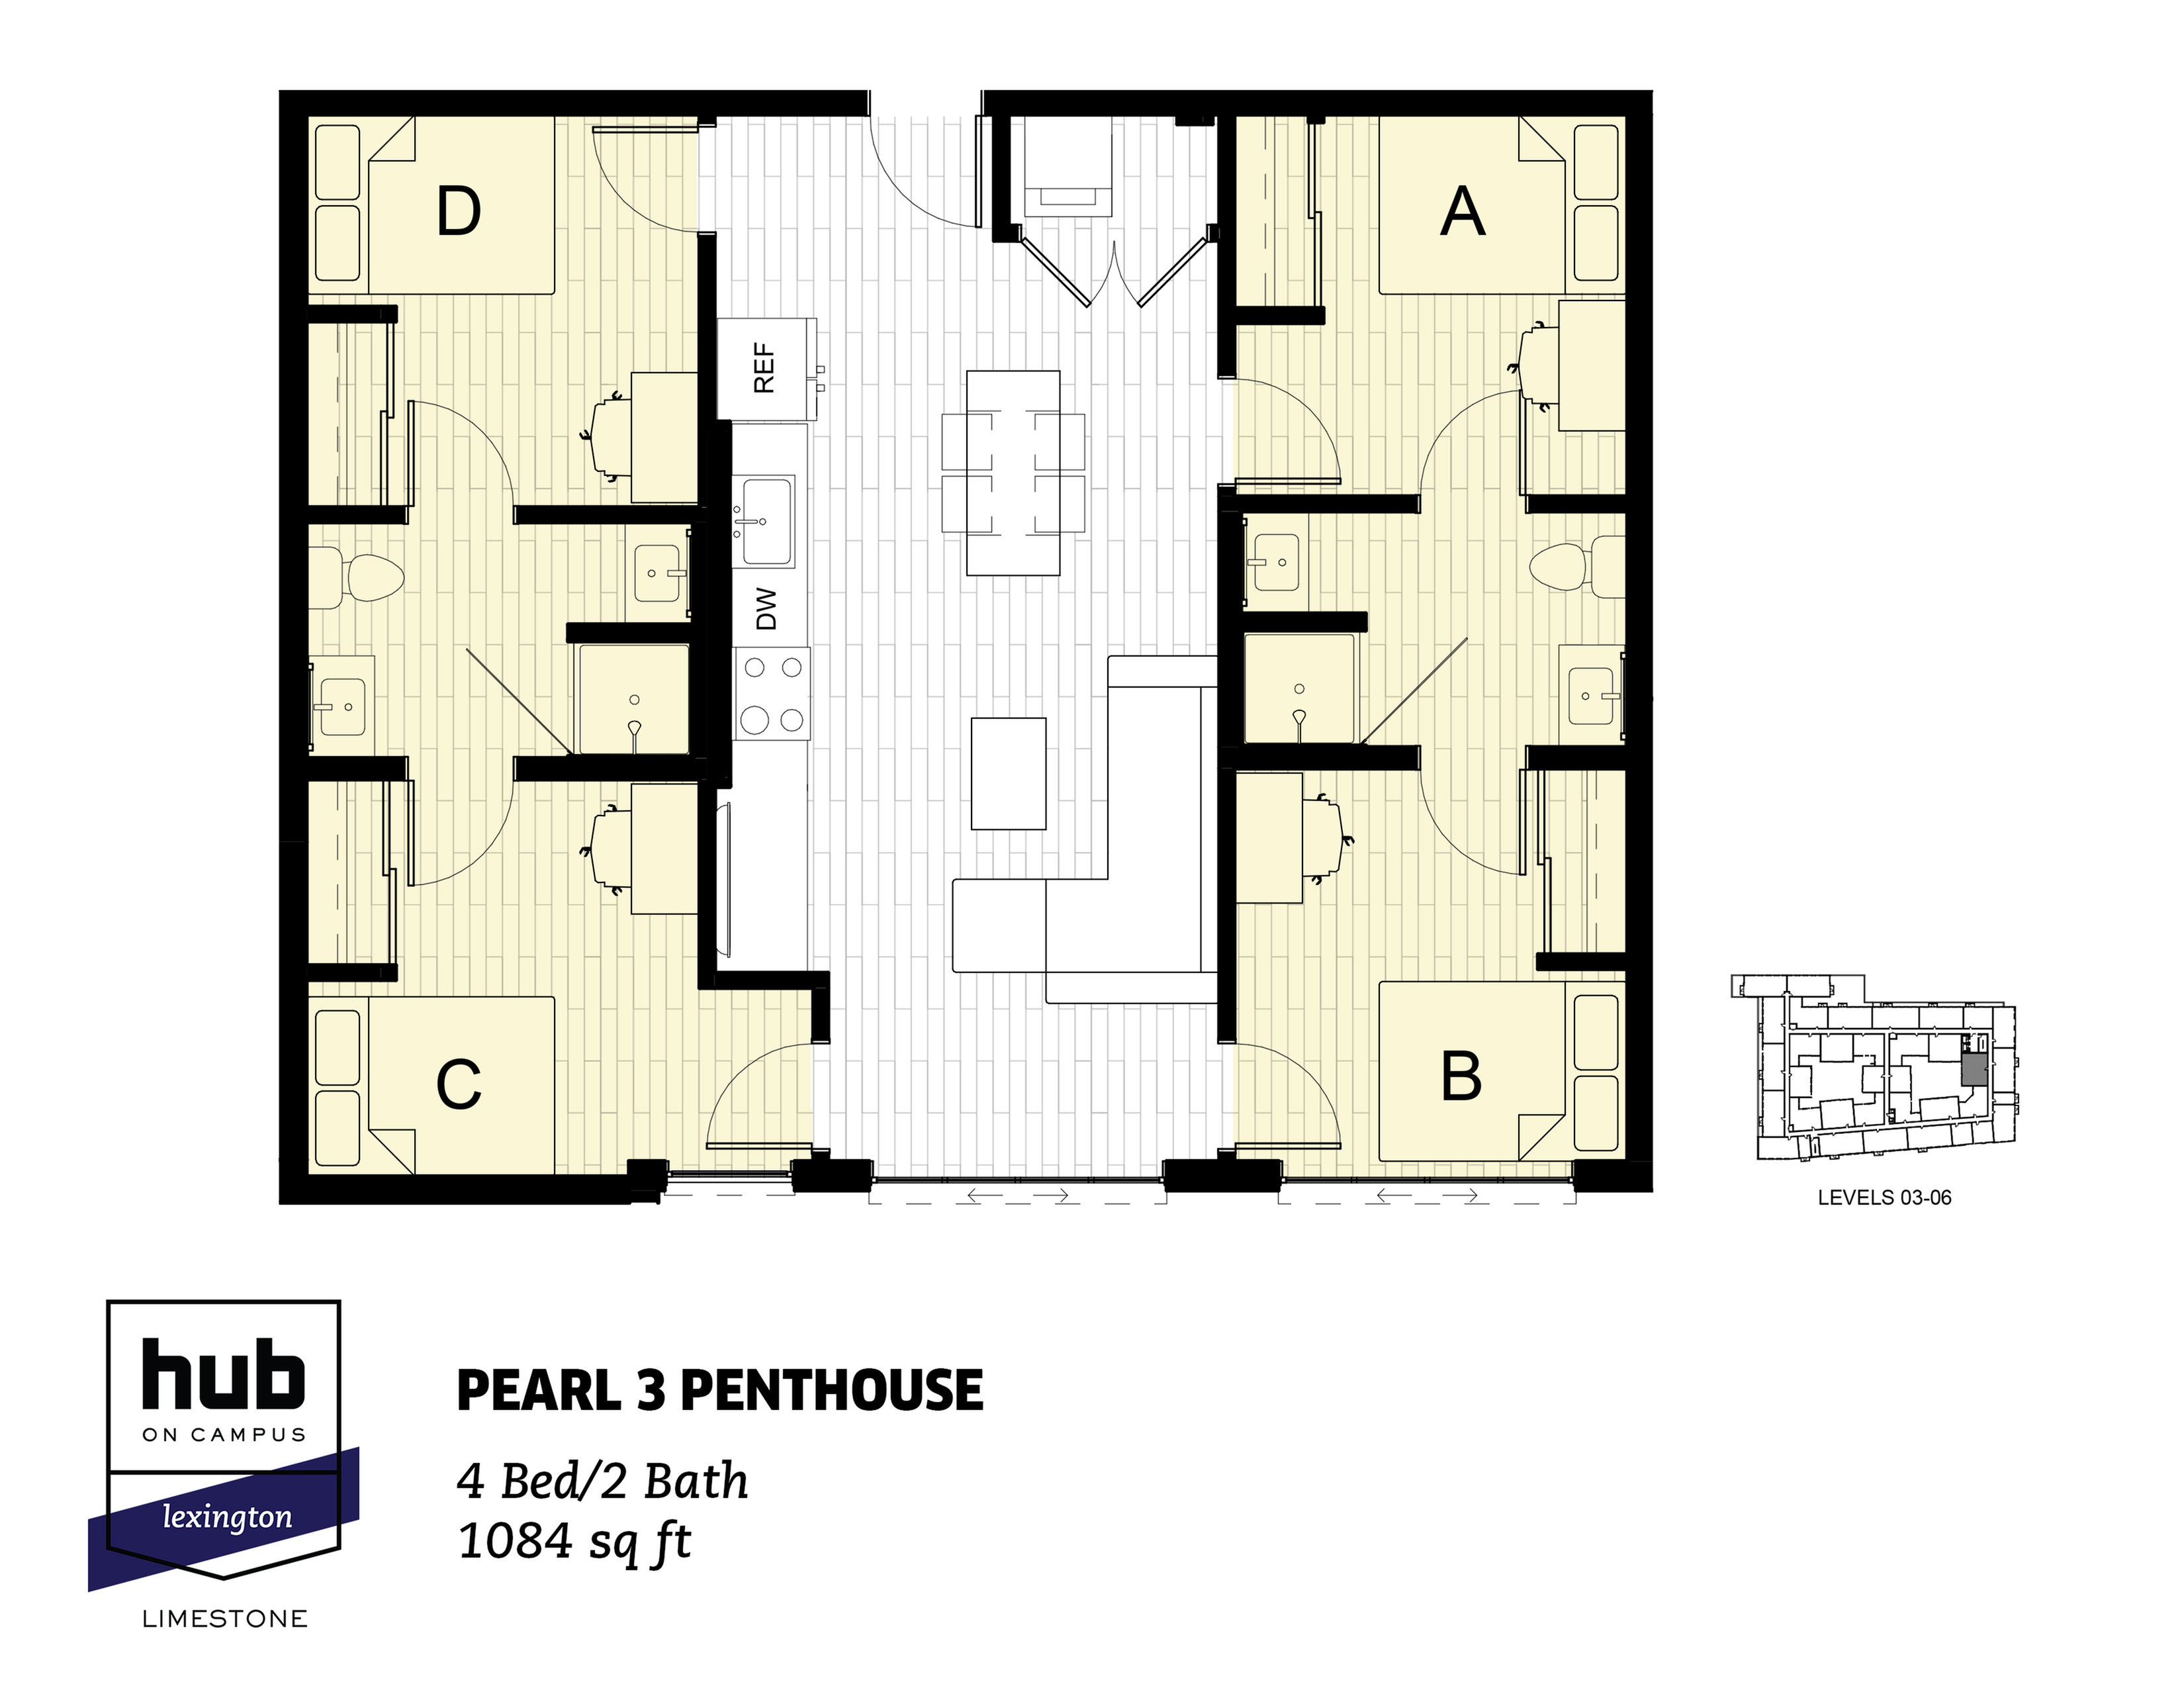 Pearl 3 Penthouse